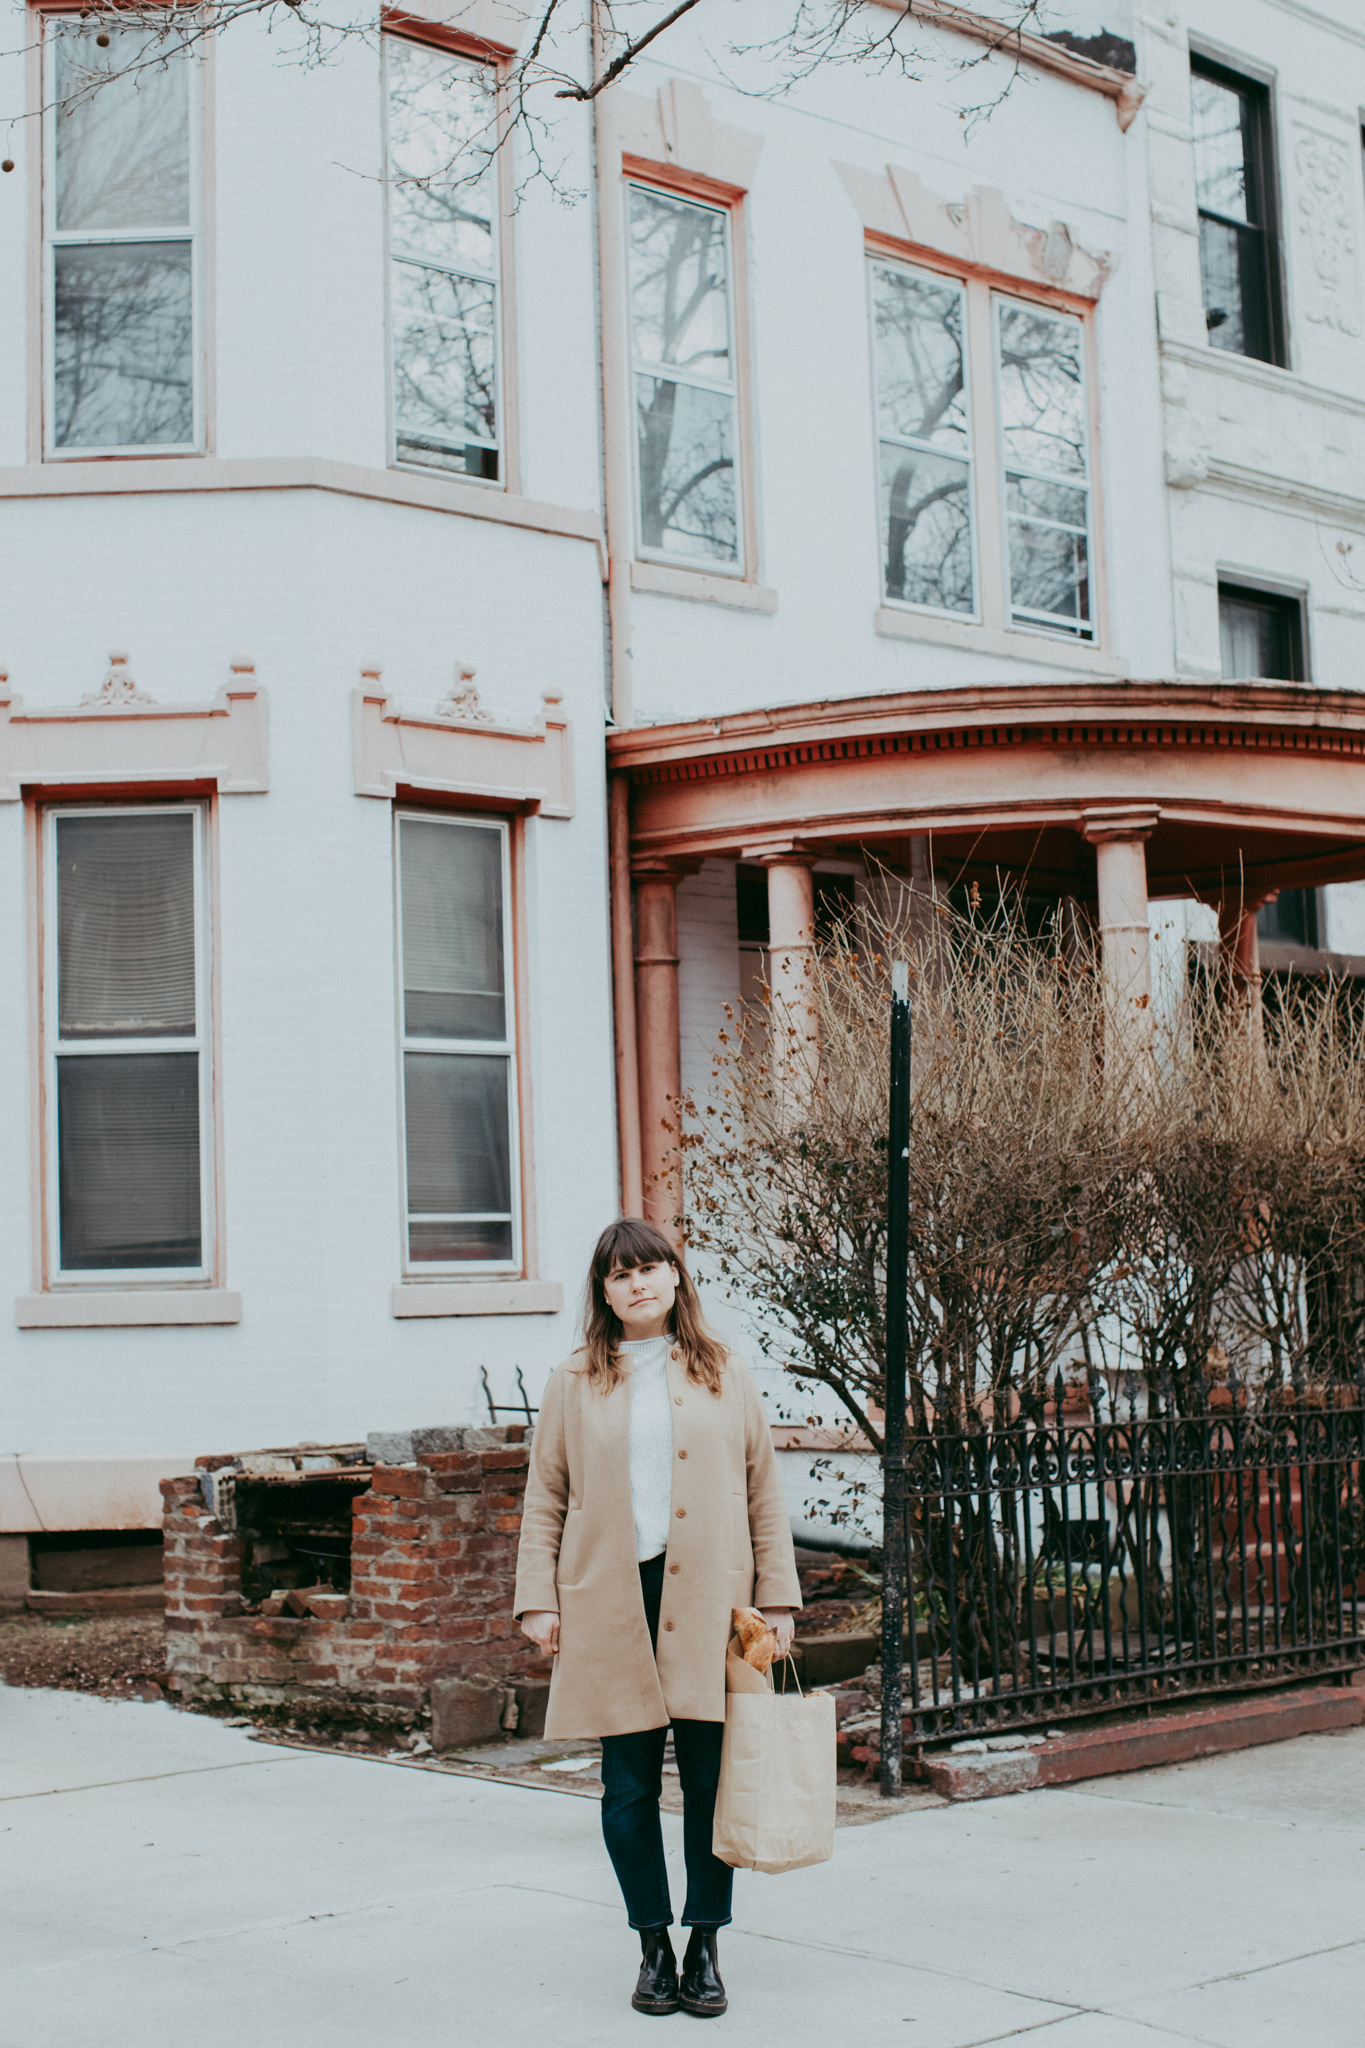 Monika Woods is a writer, literary agent, and co-founder of Triangle House. She lives in Brooklyn with her family and can be found  @booksijustread .